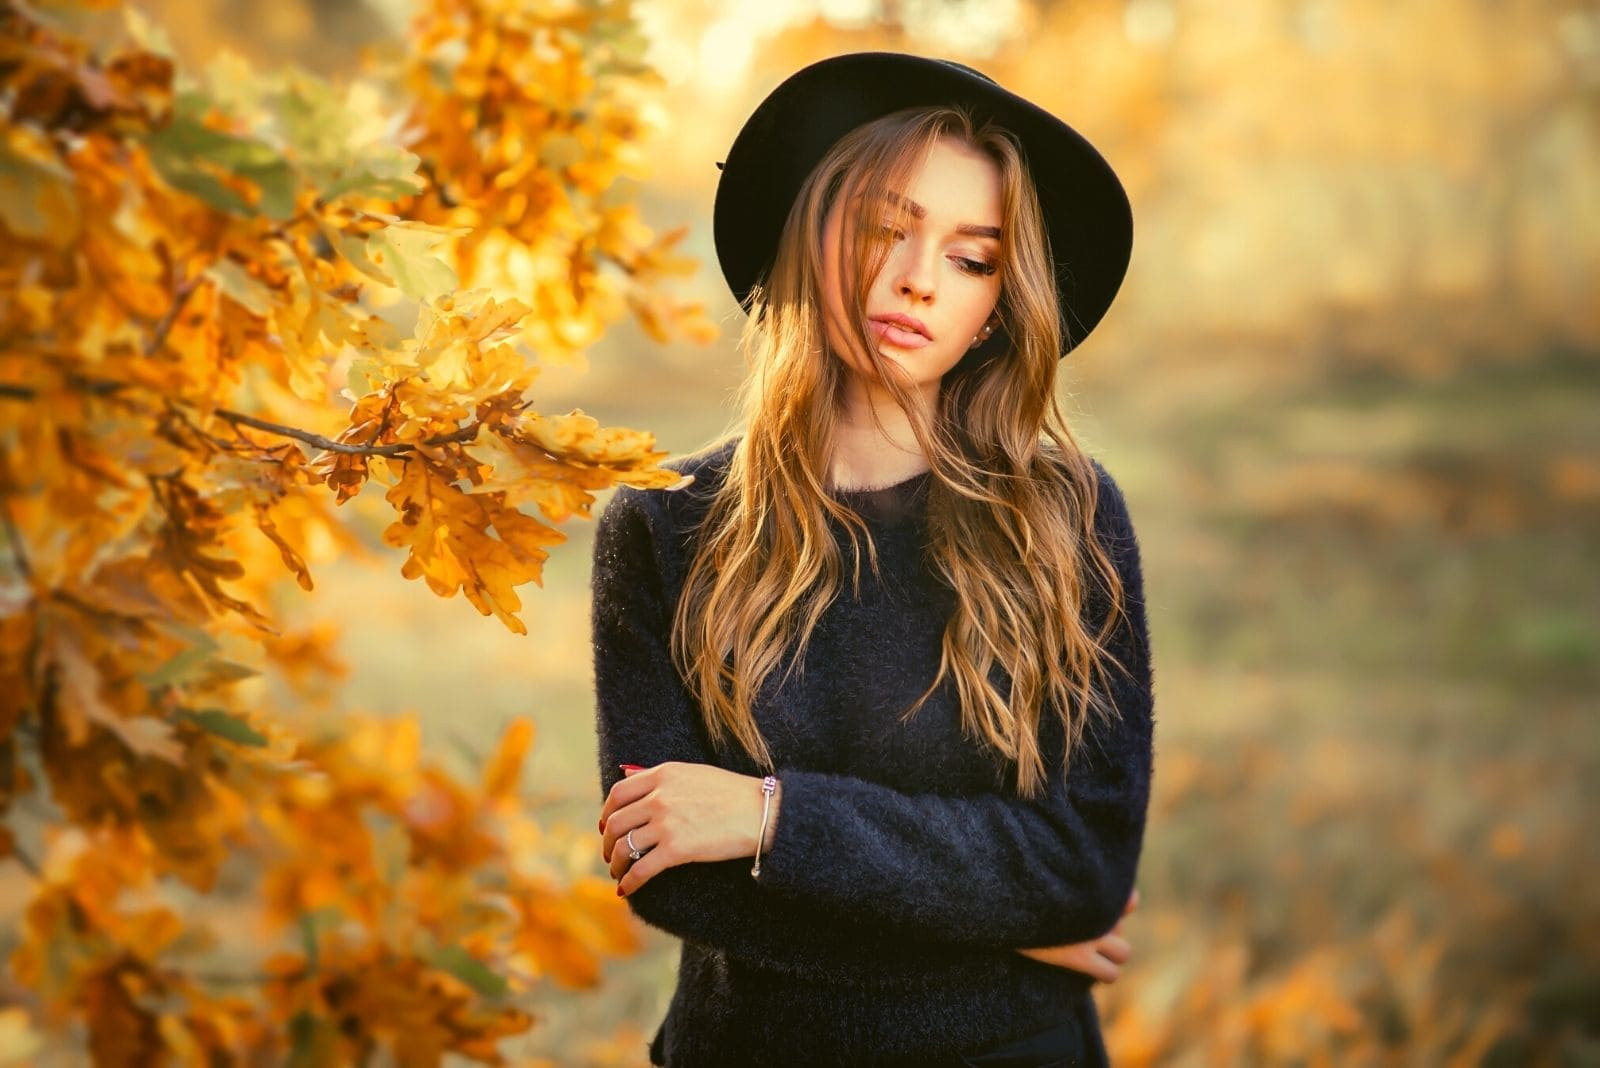 woman wearing black dress and hat standing with arms crossed in the autumn park thinking deeply